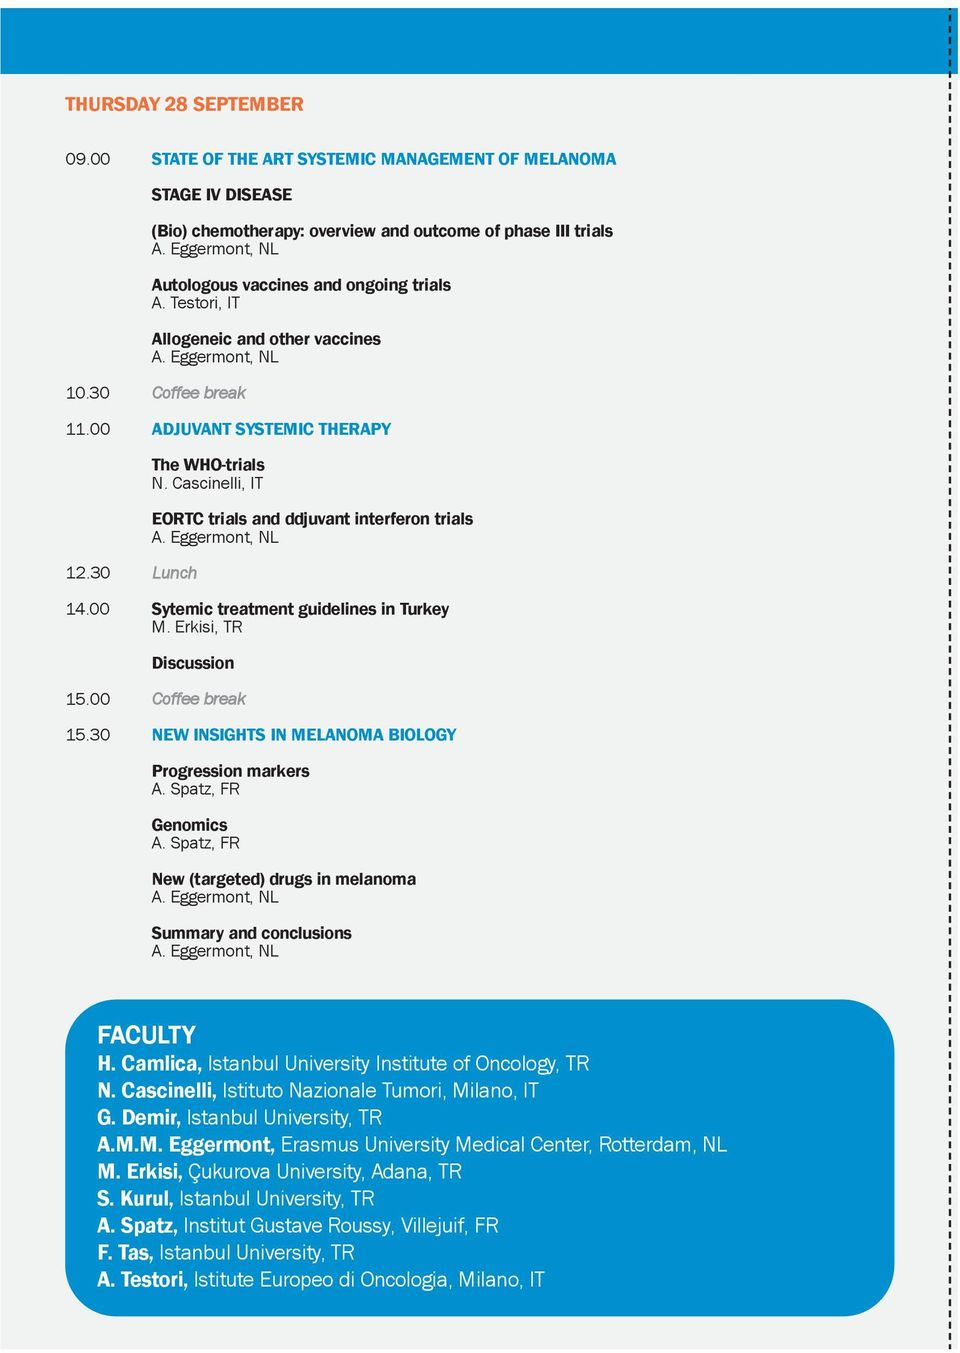 10.30 Coffee break 11.00 ADJUVANT SYSTEMIC THERAPY 12.30 Lunch The WHO-trials N. Cascinelli, IT EORTC trials and ddjuvant interferon trials 14.00 Sytemic treatment guidelines in Turkey M.